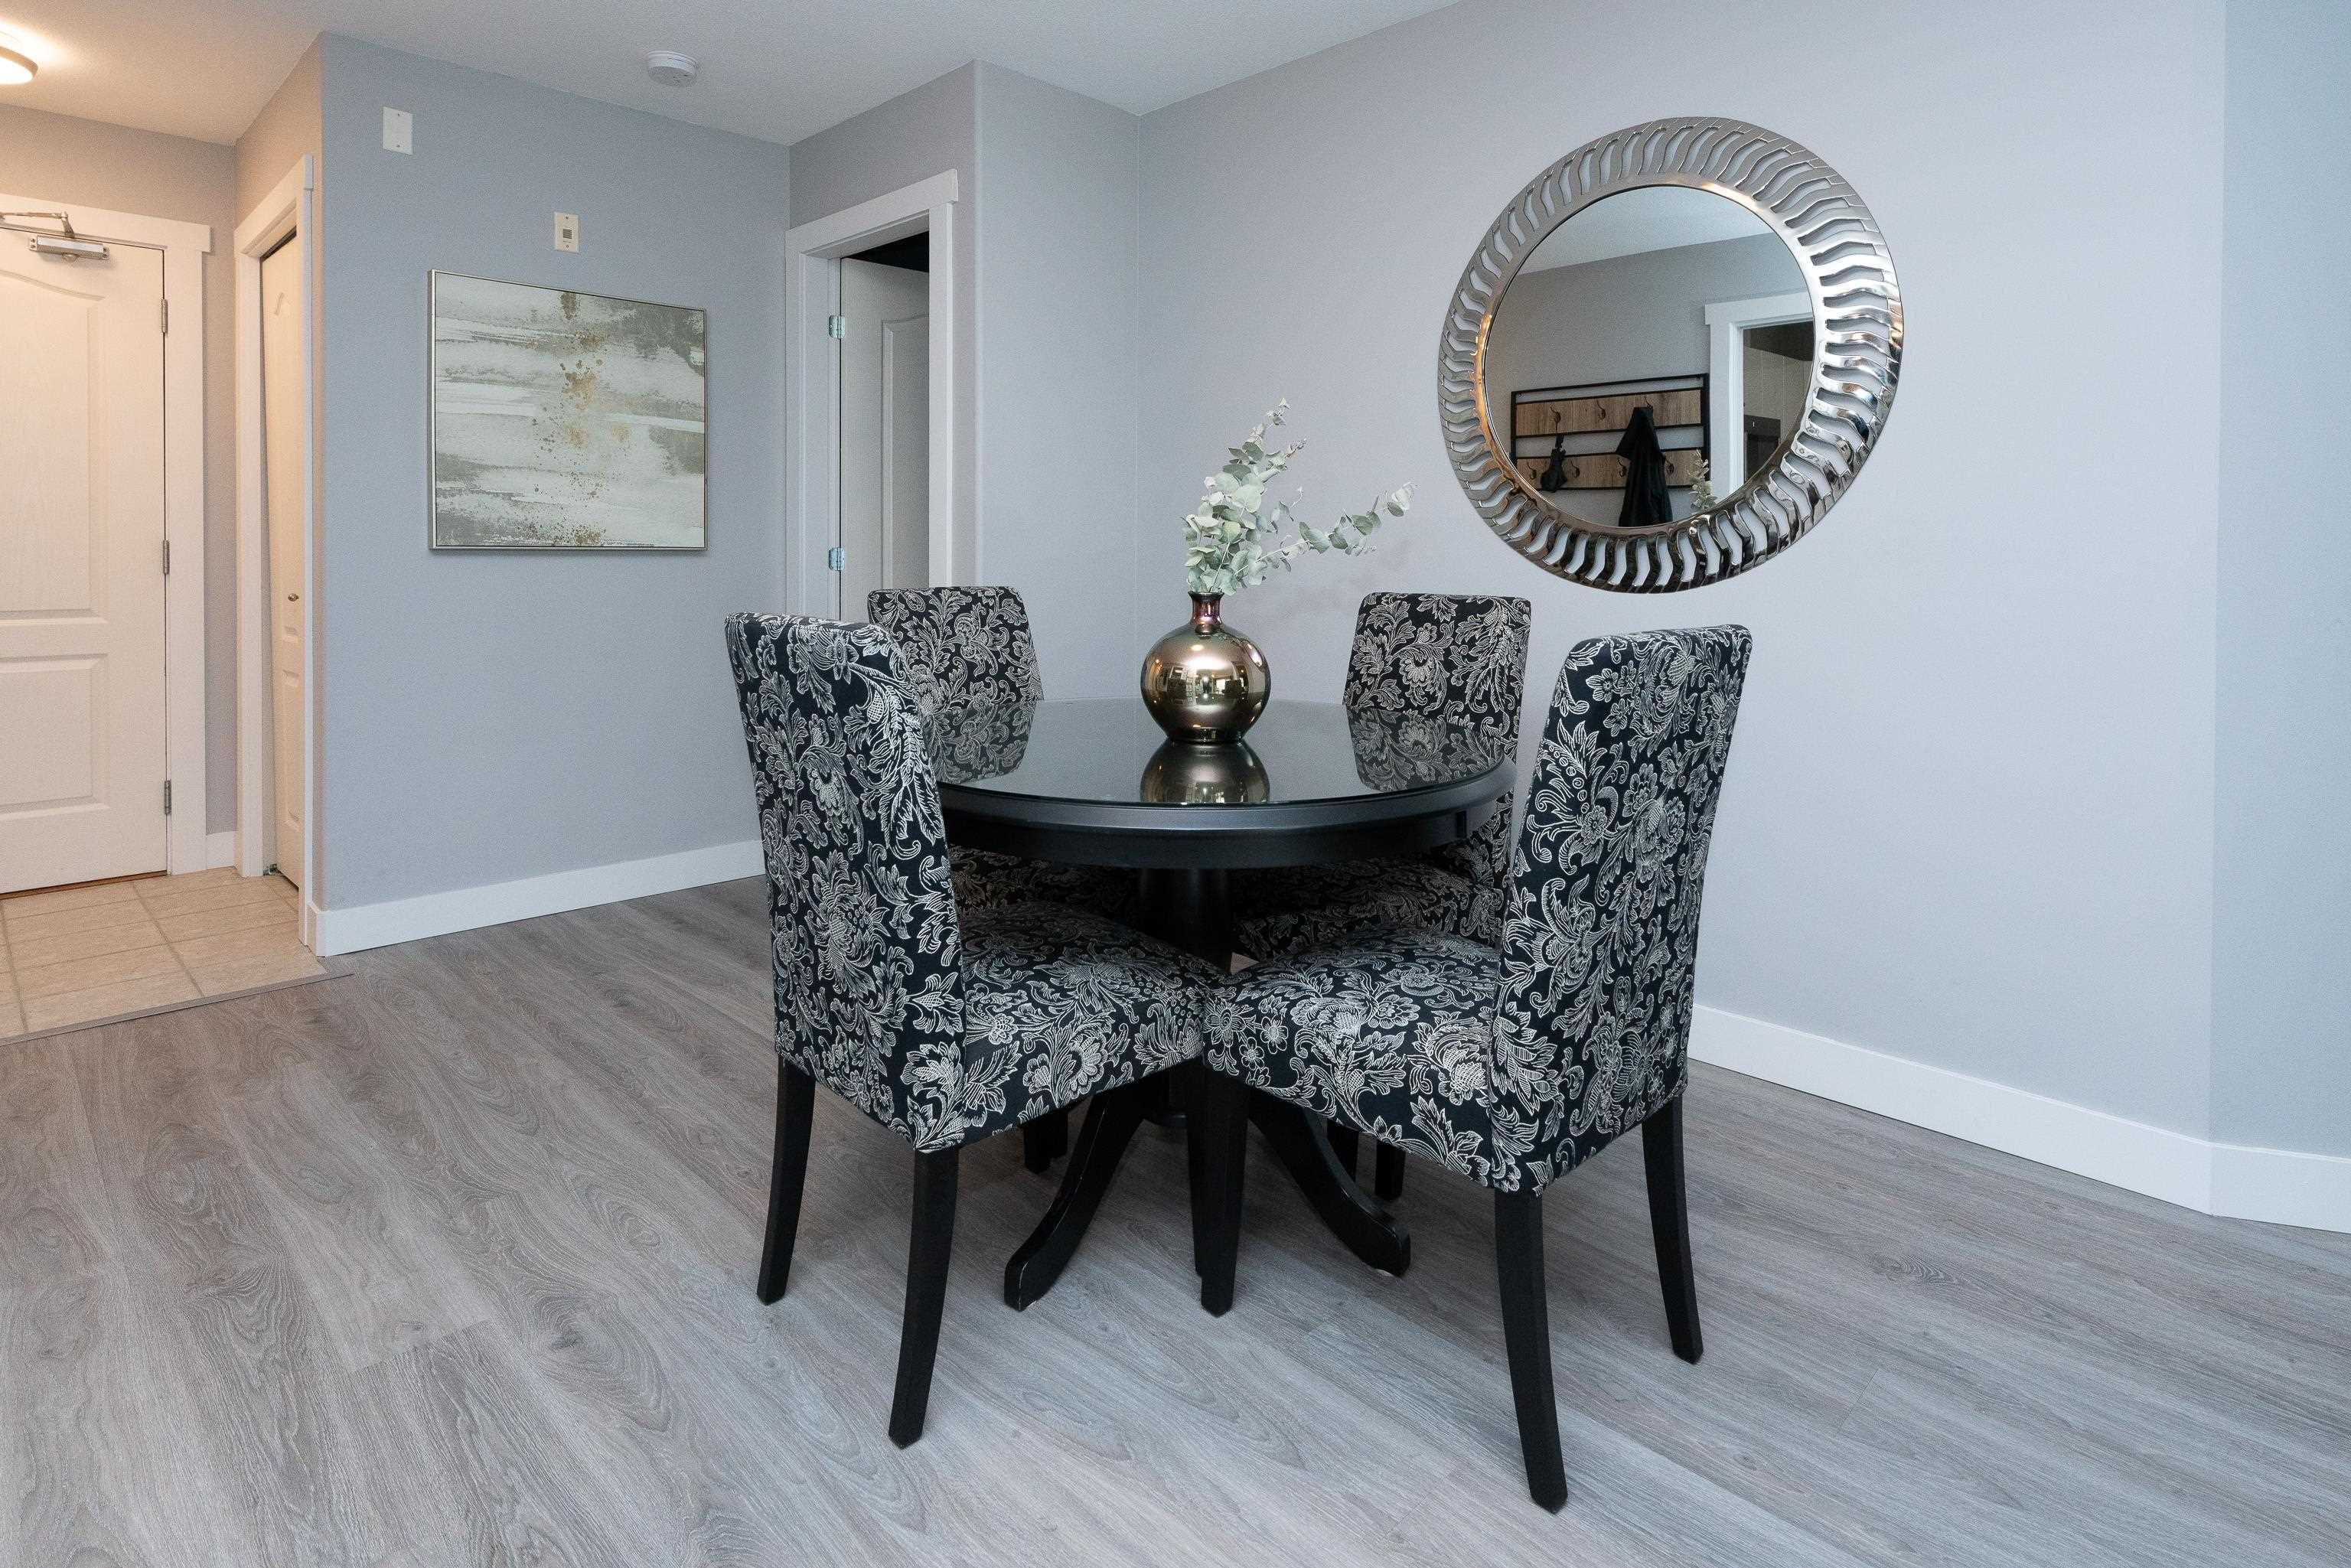 """Photo 5: Photos: 407 22022 49 Avenue in Langley: Murrayville Condo for sale in """"Murray Green"""" : MLS®# R2613823"""